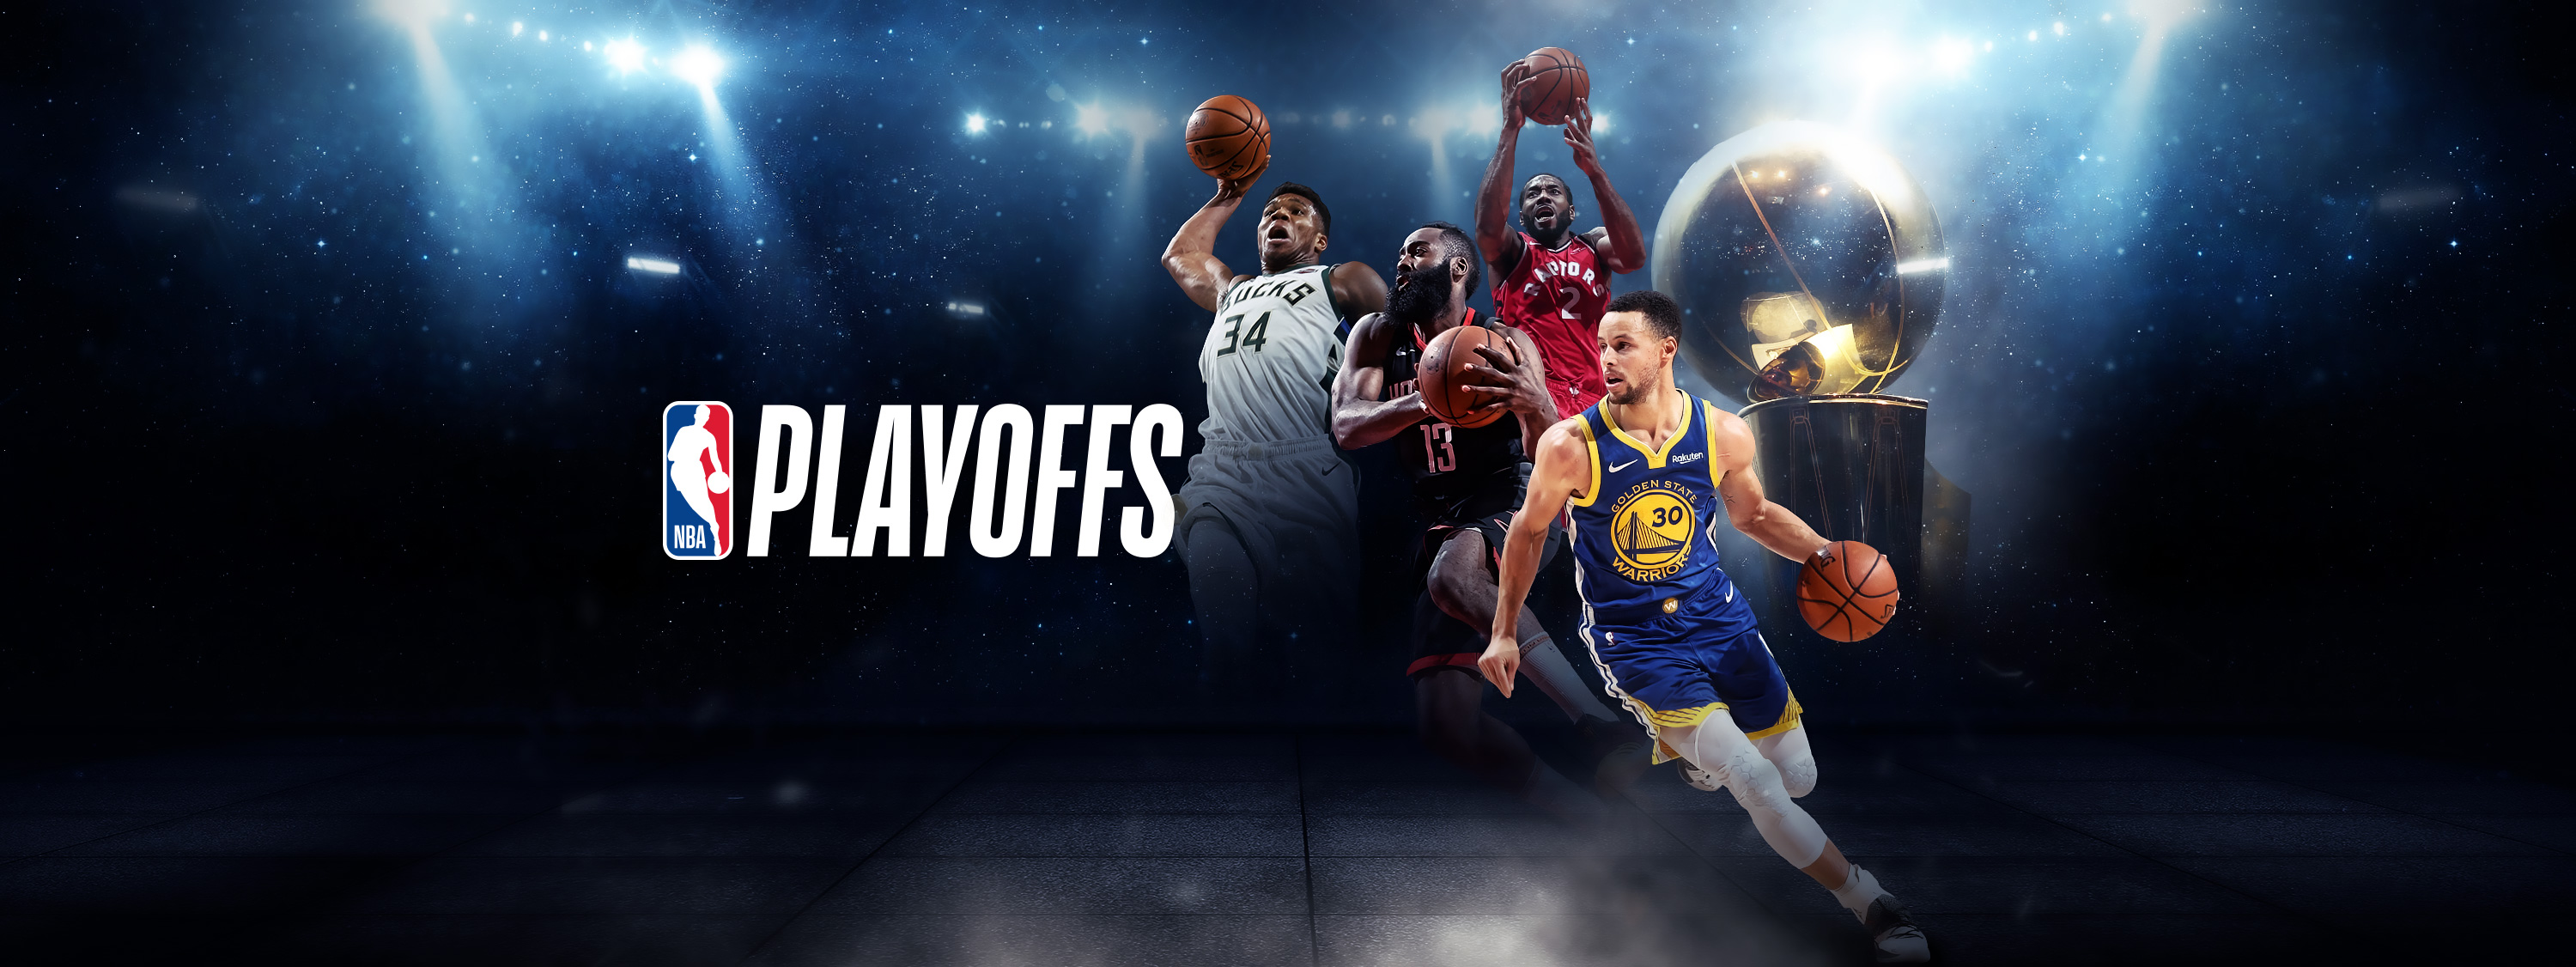 Calendrier Nba Playoff 2019.2019 Nba Playoffs Conference Semifinals Schedule And